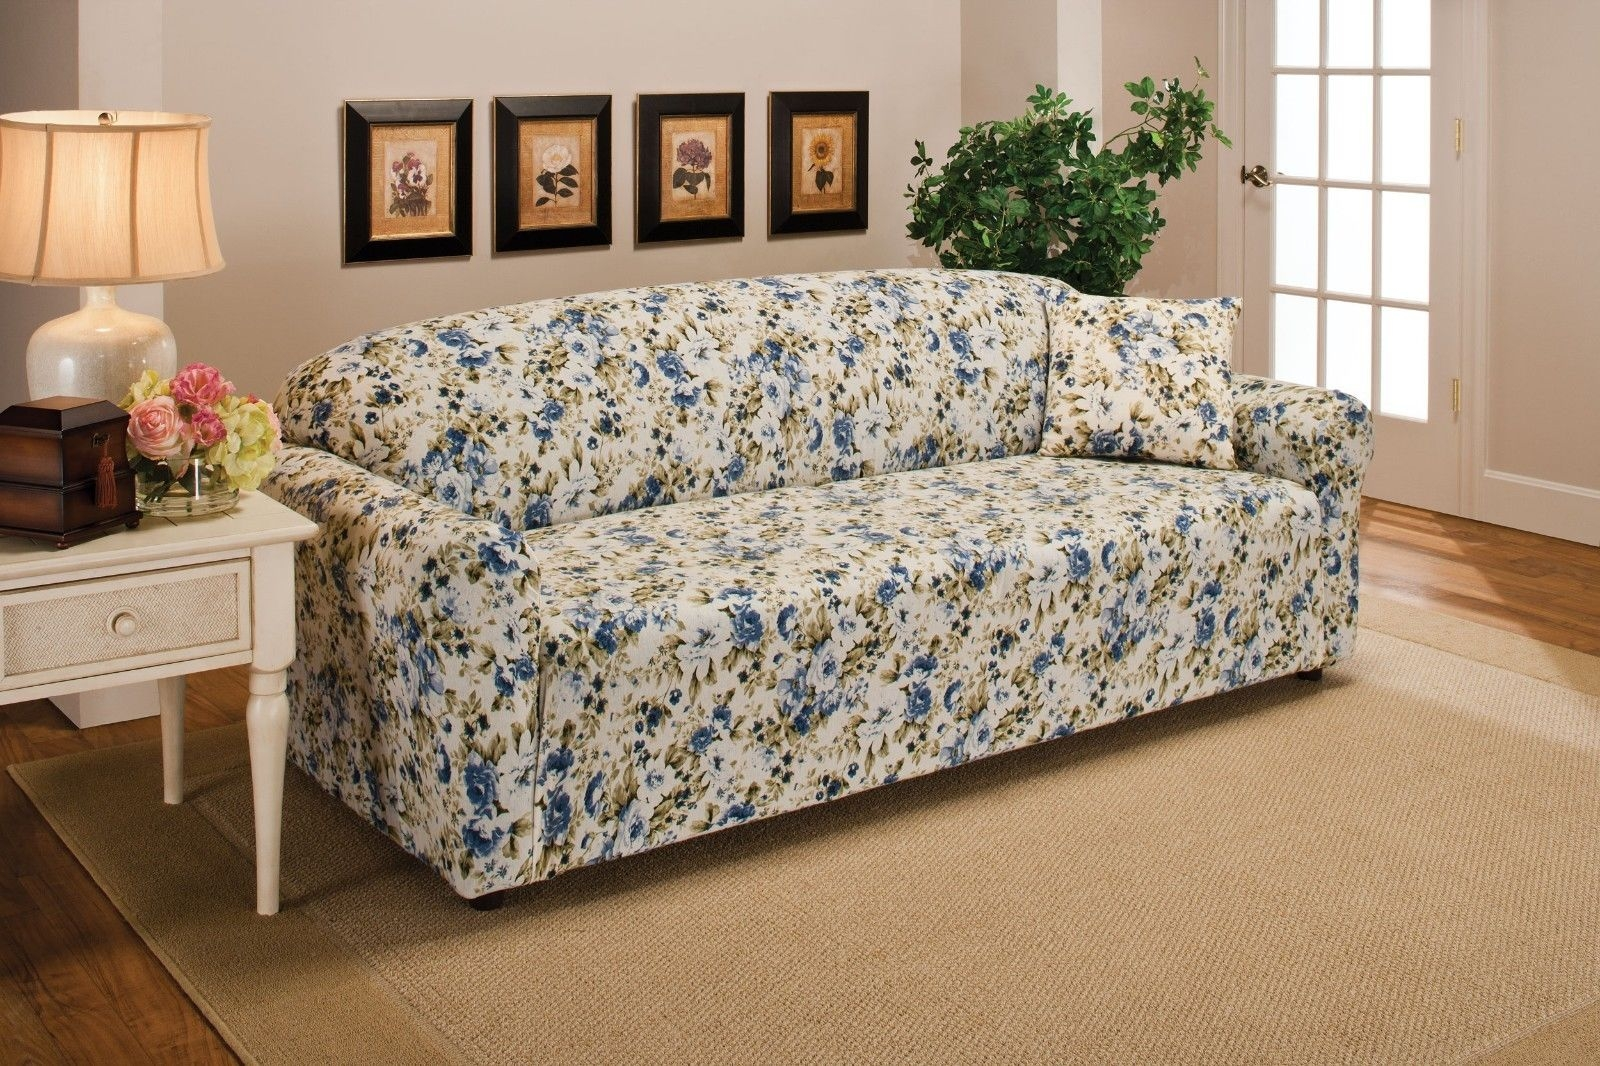 Flower Print Sofa 1970 Floral Sofa Flower Print Couch Suzy Q Within Chintz Floral  Sofas